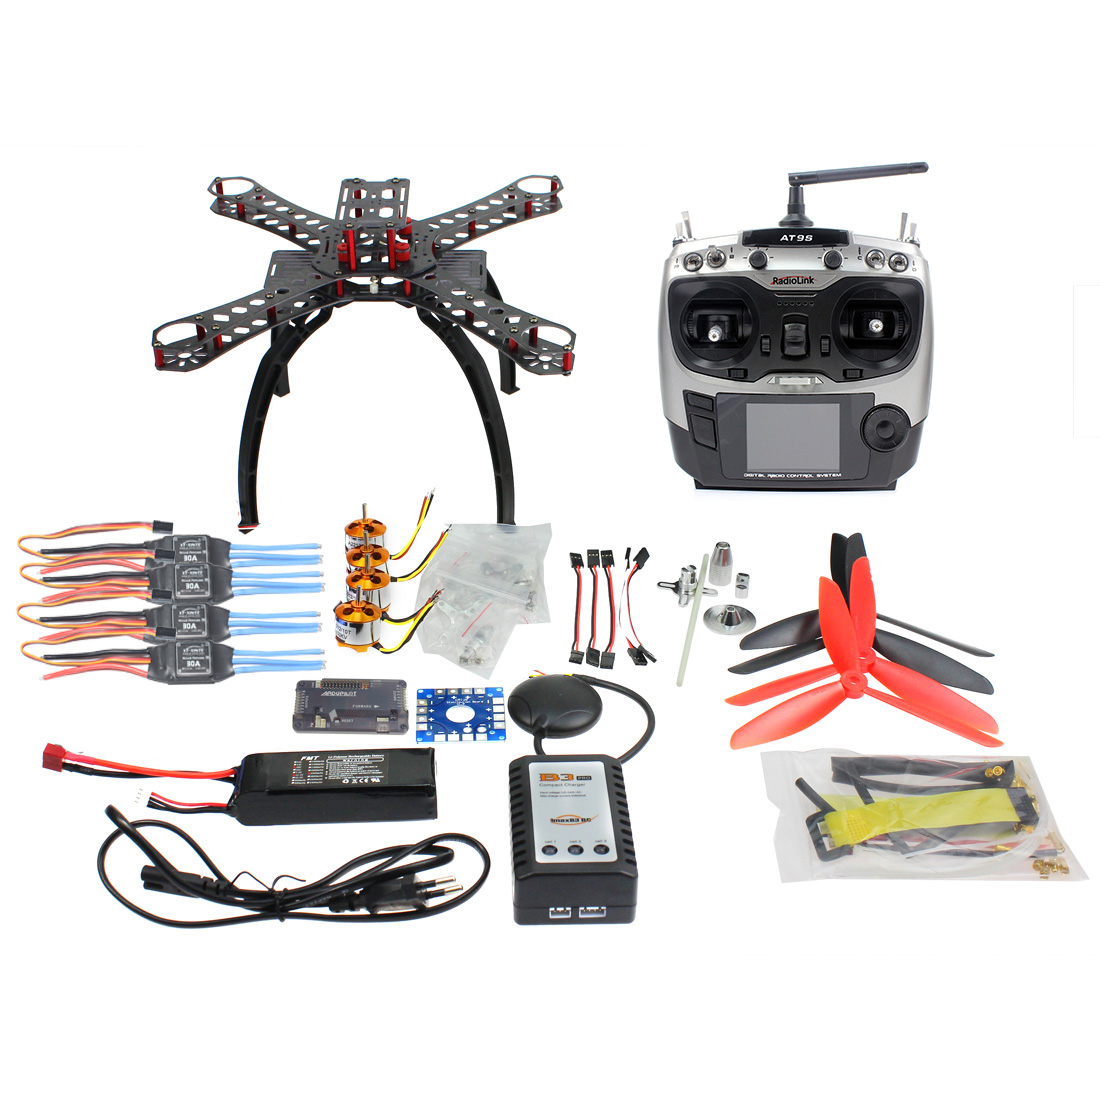 DIY RC Fiberglass  Frame Multicopter Full Kit DIY GPS Drone FPV Radiolink AT9 Transmitter APM2.8 1400KV Motor 30A ESC F14891-C f17881 newest radiolink m8n gps diy fpv rc drone multicopter flight controller gps module with gps stand holder bracket